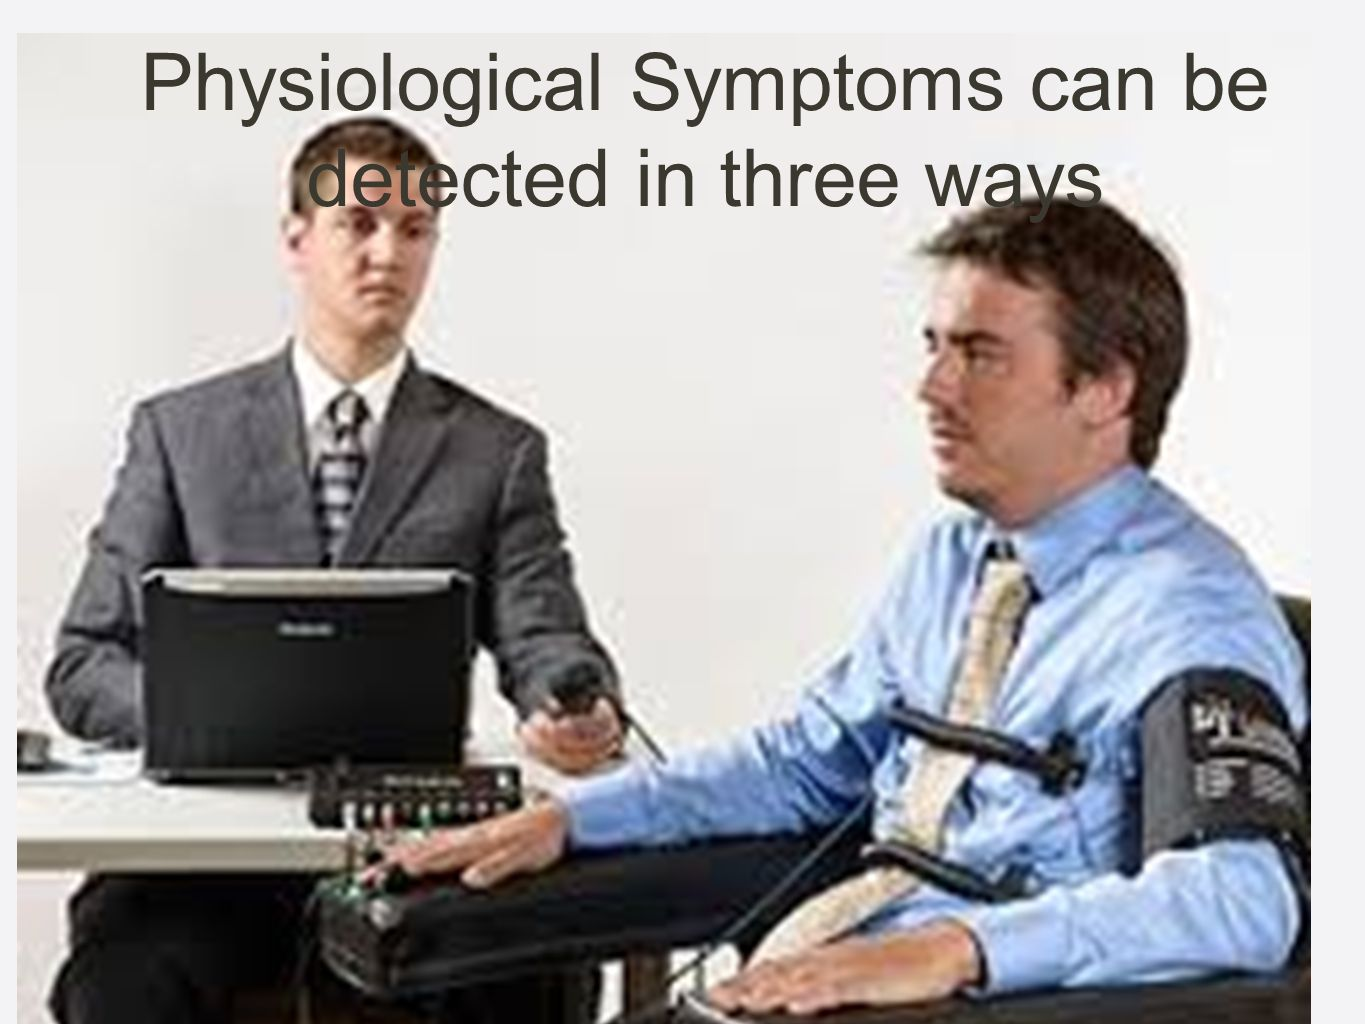 Physiological Symptoms can be detected in three ways